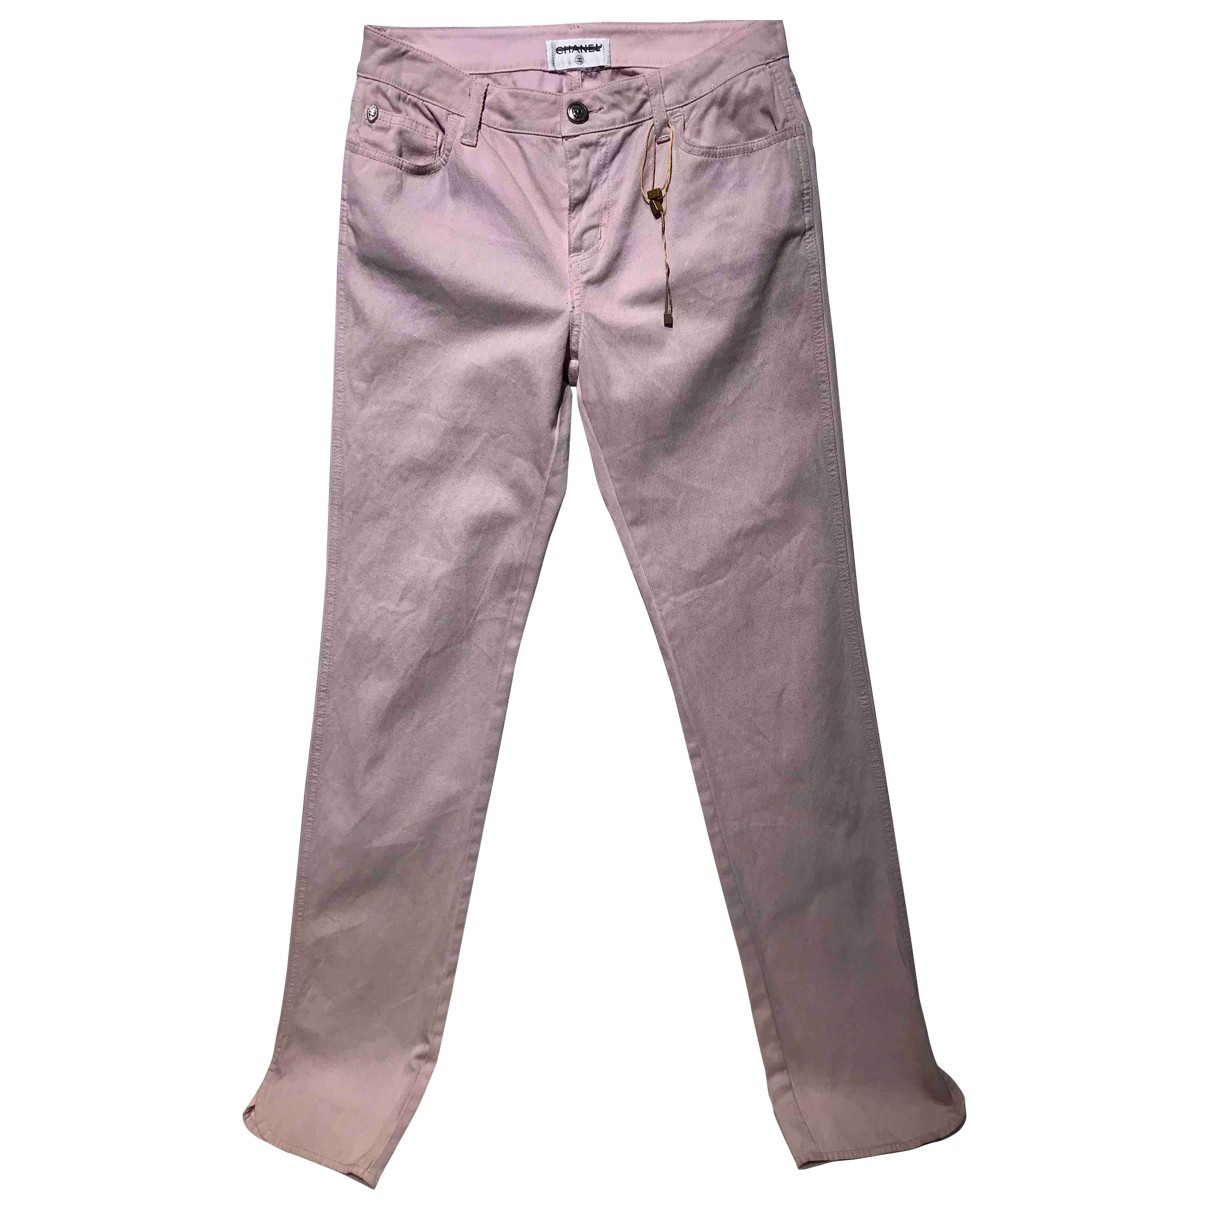 Chanel \N Pink Cotton Trousers for Women 36 FR